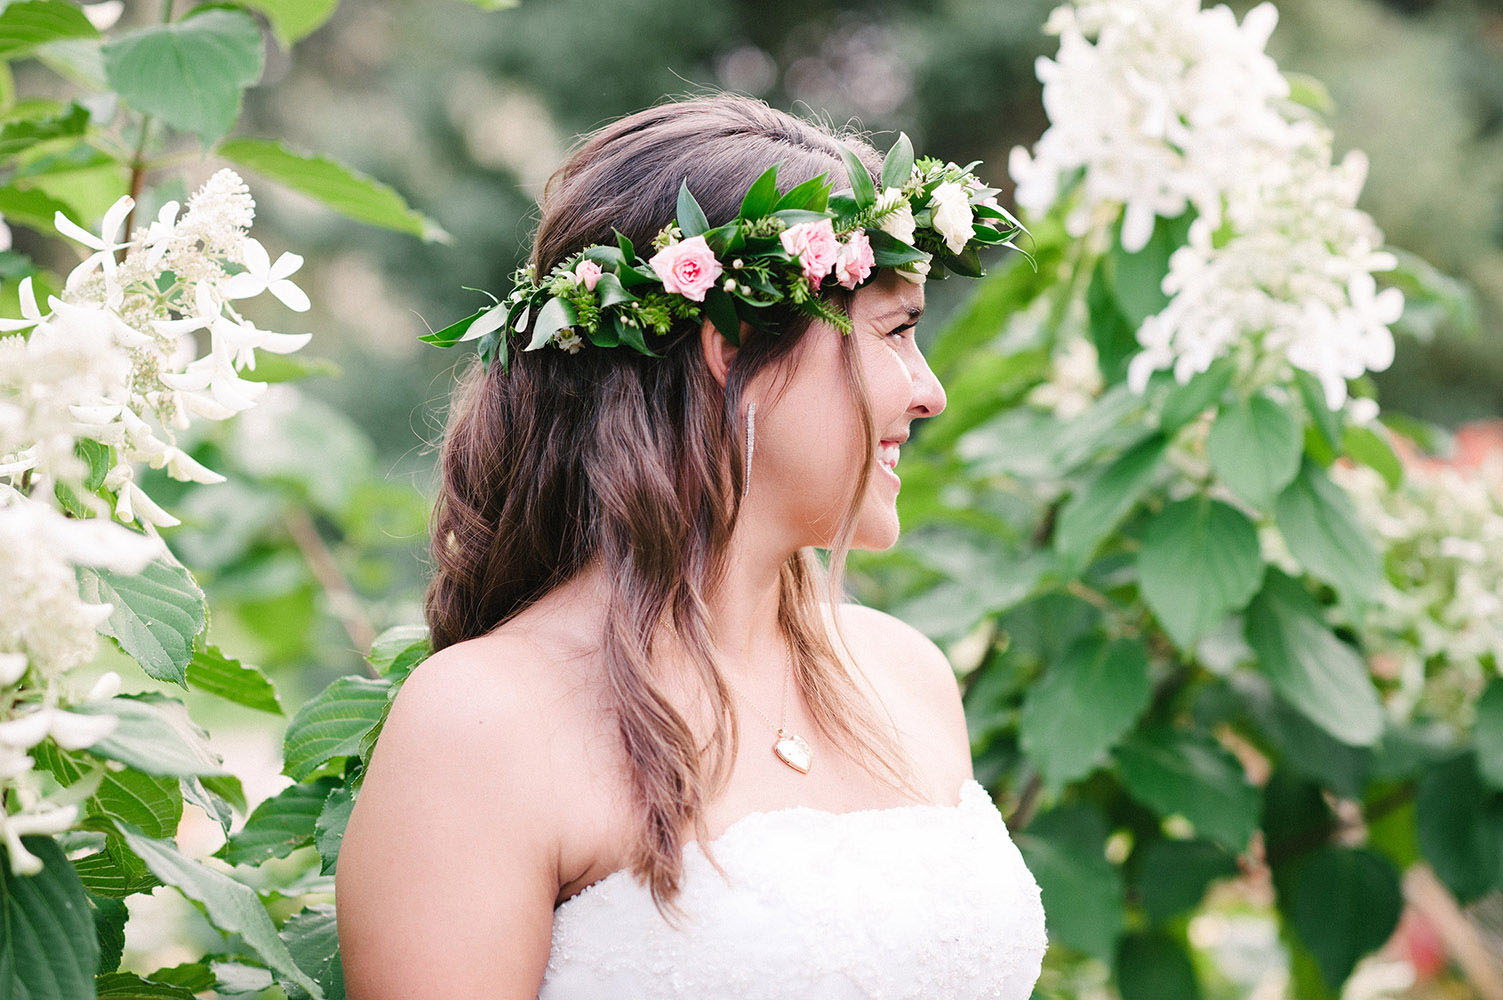 Bride with long brown hair and pink and green floral crown